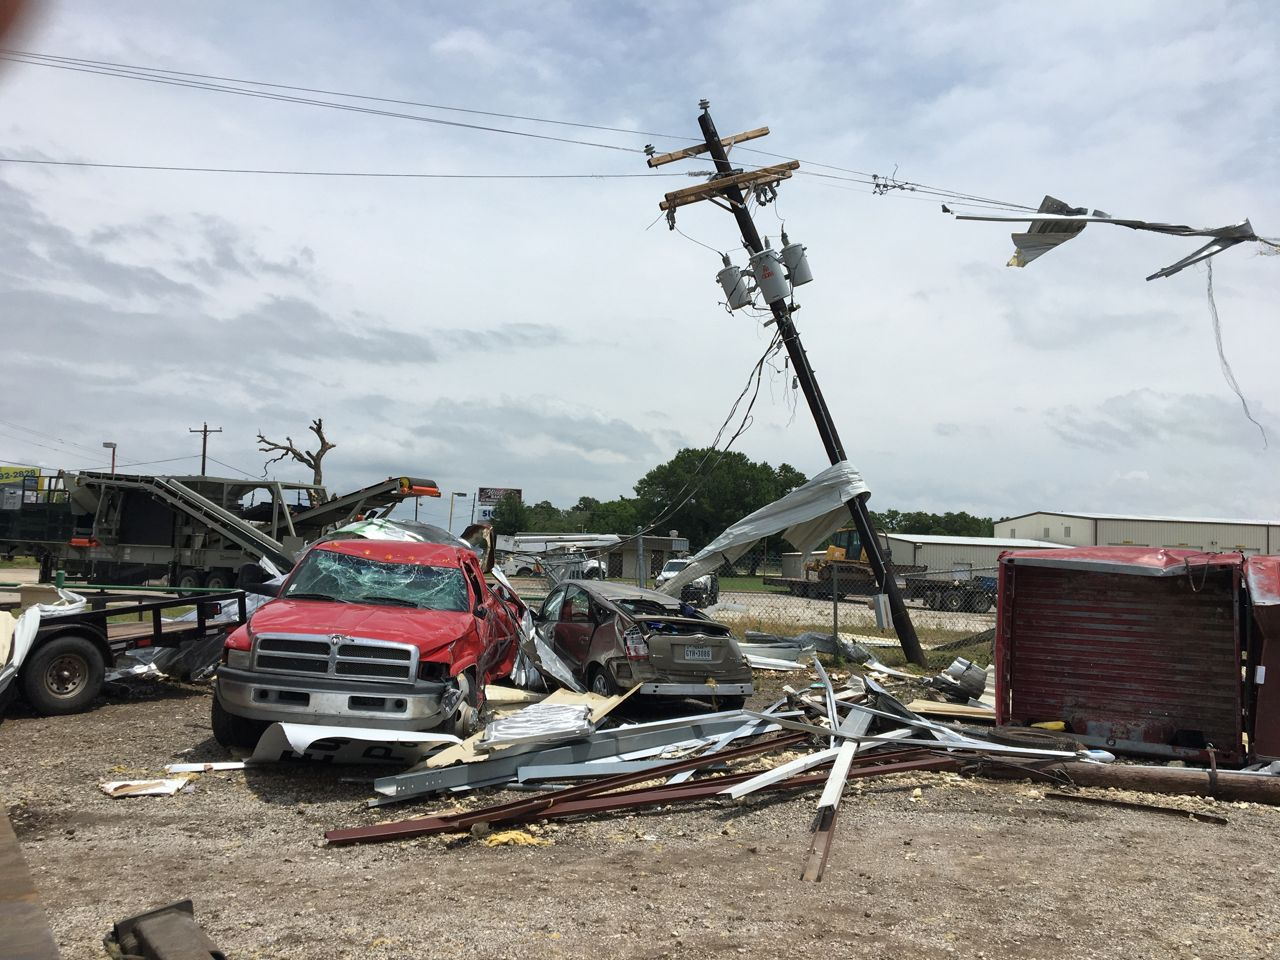 Two vehicles and electric lines were damaged during the tornadoes.